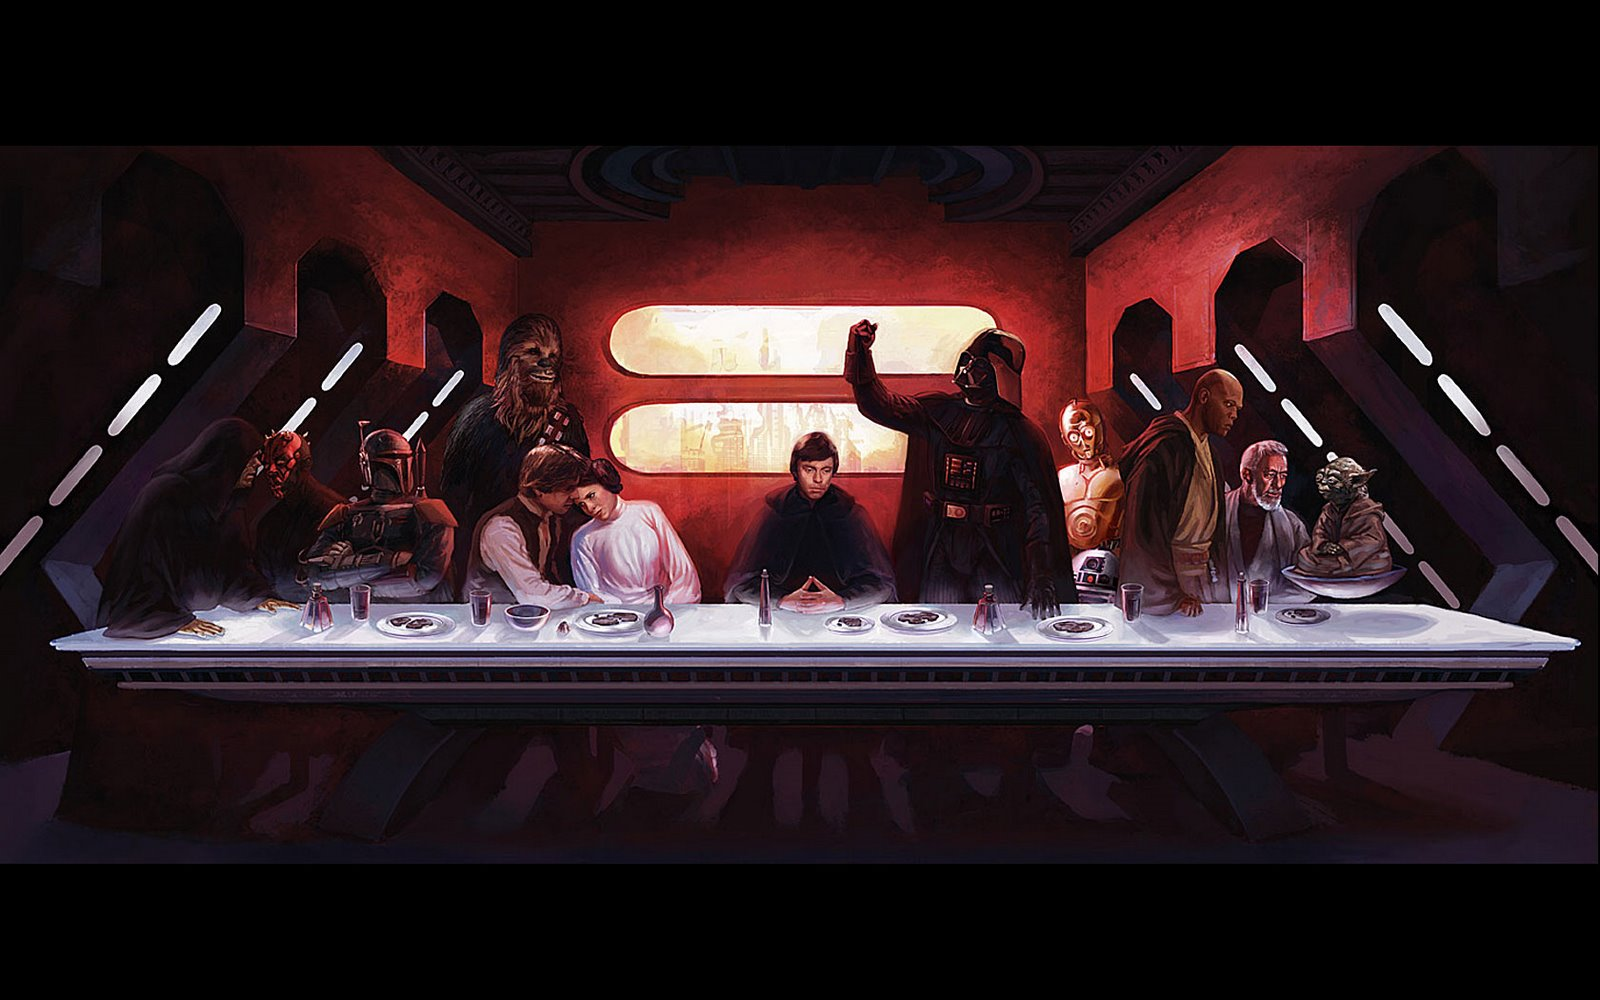 SW the last supper wallpaperjpg 1600x1000